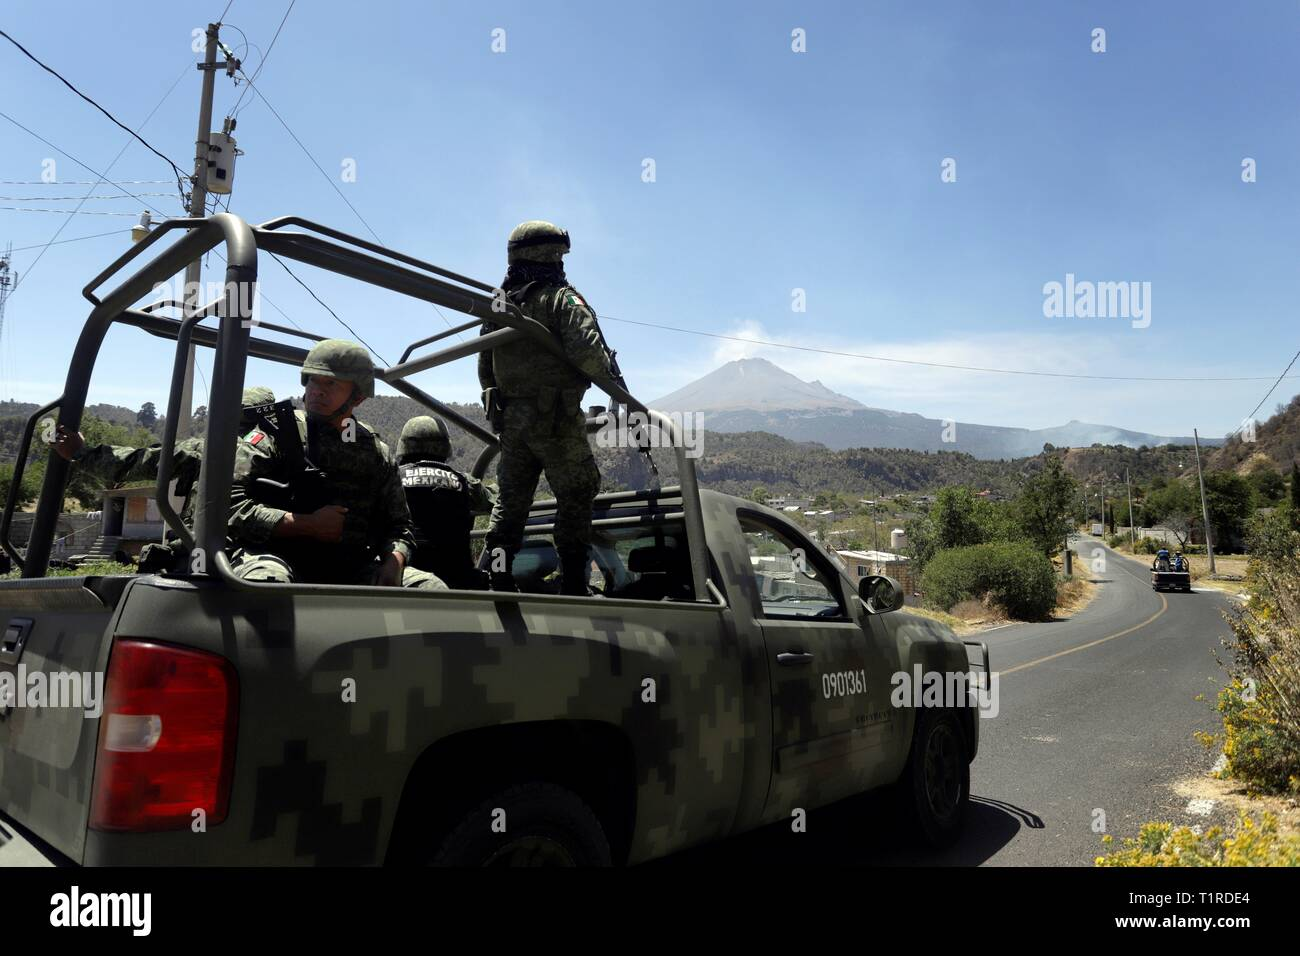 Xalitzintla, Mexico. 28th Mar, 2019. Members of the Mexican Army patrol near the Popocatepetl volcano, in Xalitzintla, Mexico, 28 March 2019. The National Civil Protection Office of Mexico elevated the phase three alert to yellow due to the activity of the Popocatepetl volcano. EFE/ Hilda Rios Credit: EFE News Agency/Alamy Live News Stock Photo